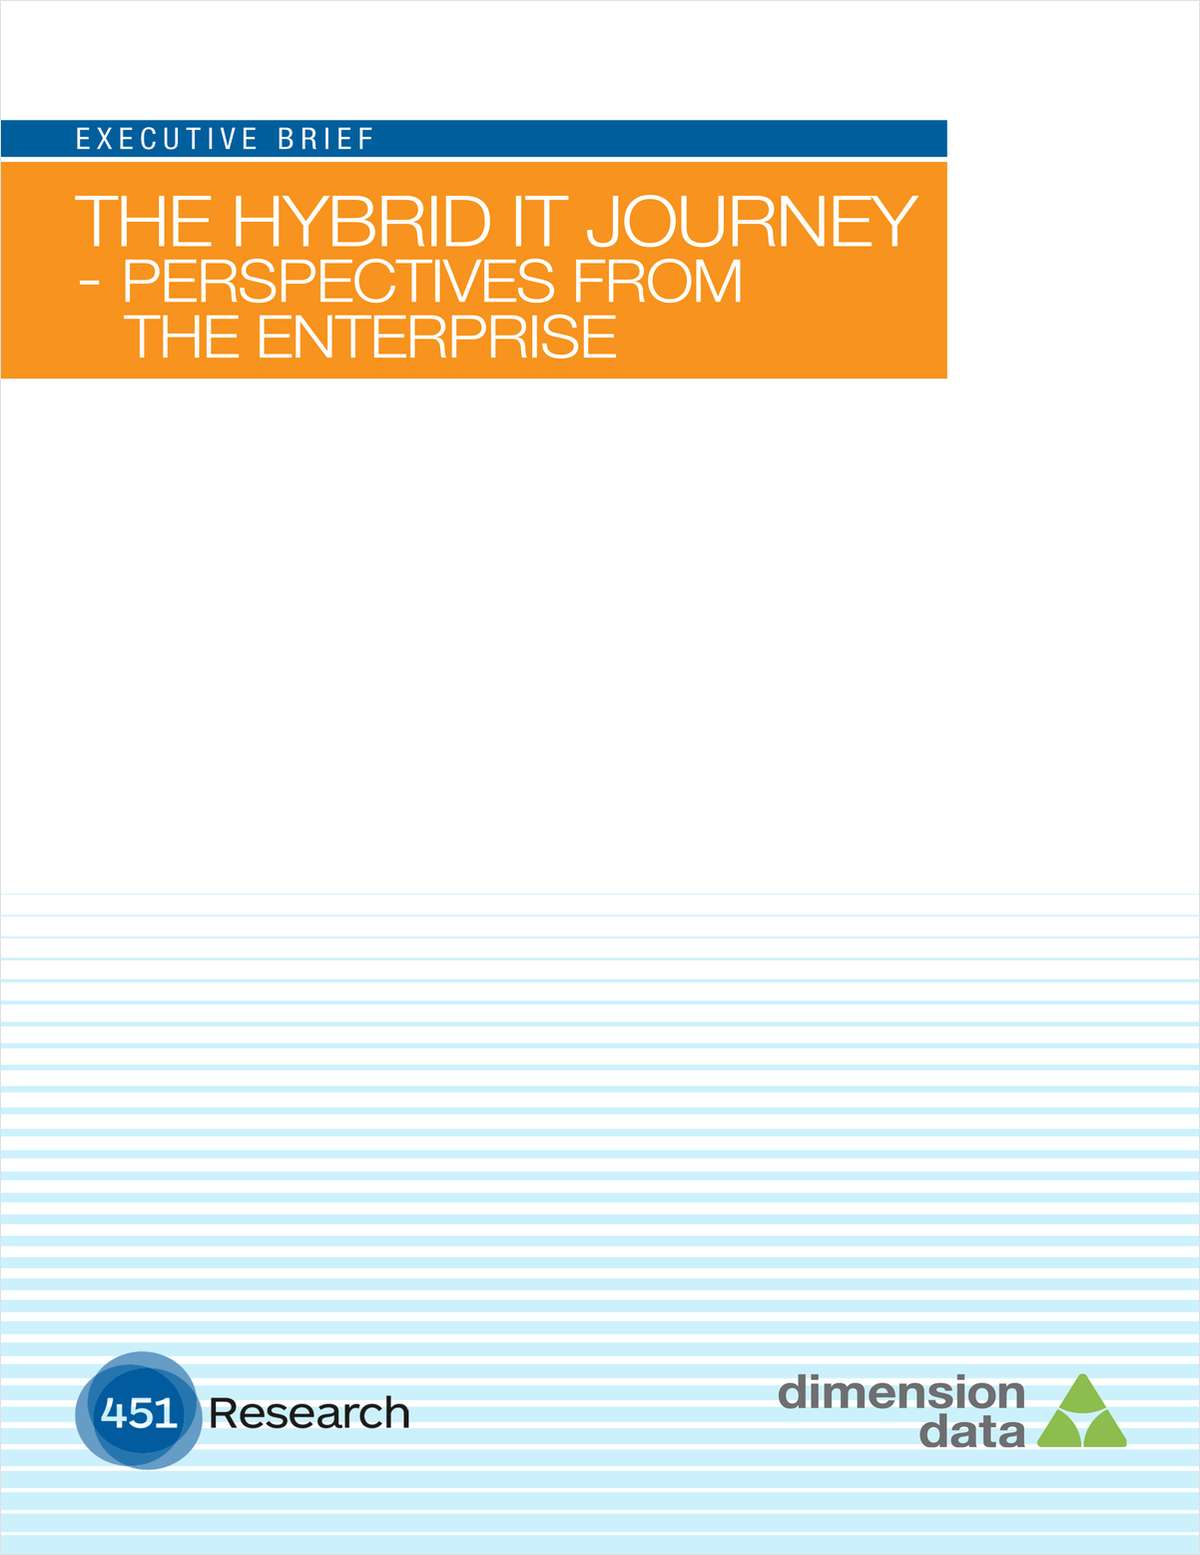 The Hybrid IT Journey - Perspectives from the Enterprise